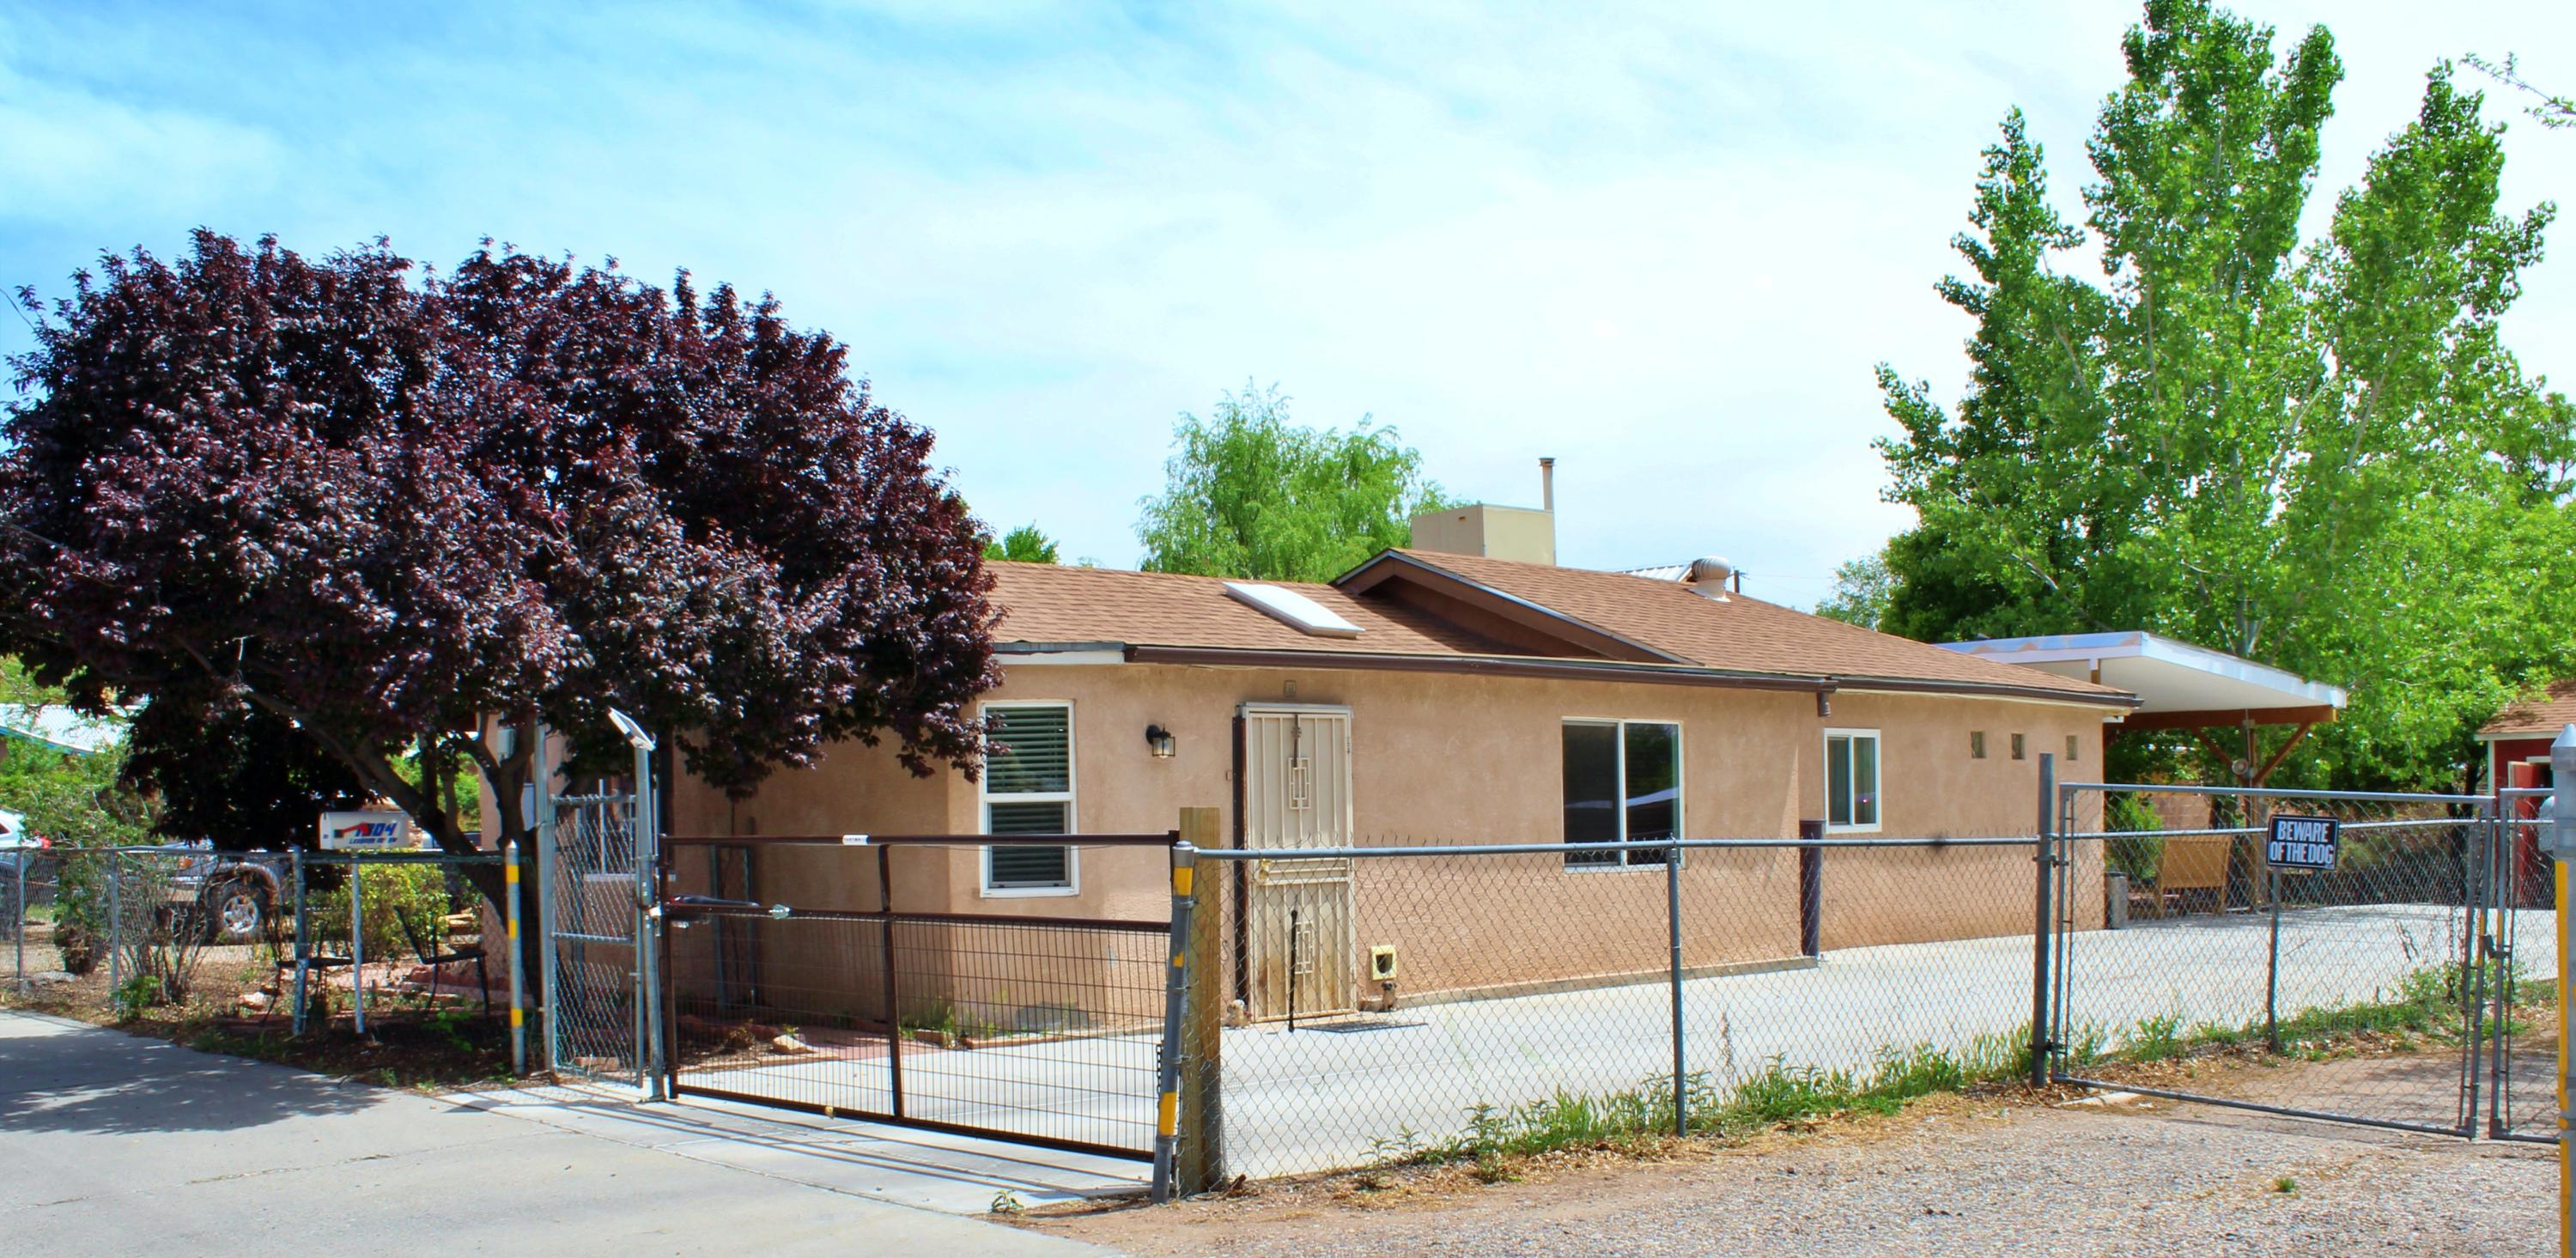 Please view this Amazing home in the heart of Albuquerque. This home is located in a quaint neighborhood close to many local attractions. This home Features Updated Laminate Flooring and Ceiling Fans. Includes Smart Electric Gate, and a Smart Front Door Lock. Attached is also a very large back yard full of vegetation, a small pond, a large shed, swing set, and a Hot Tub to enjoy the lovely Albuquerque nights.